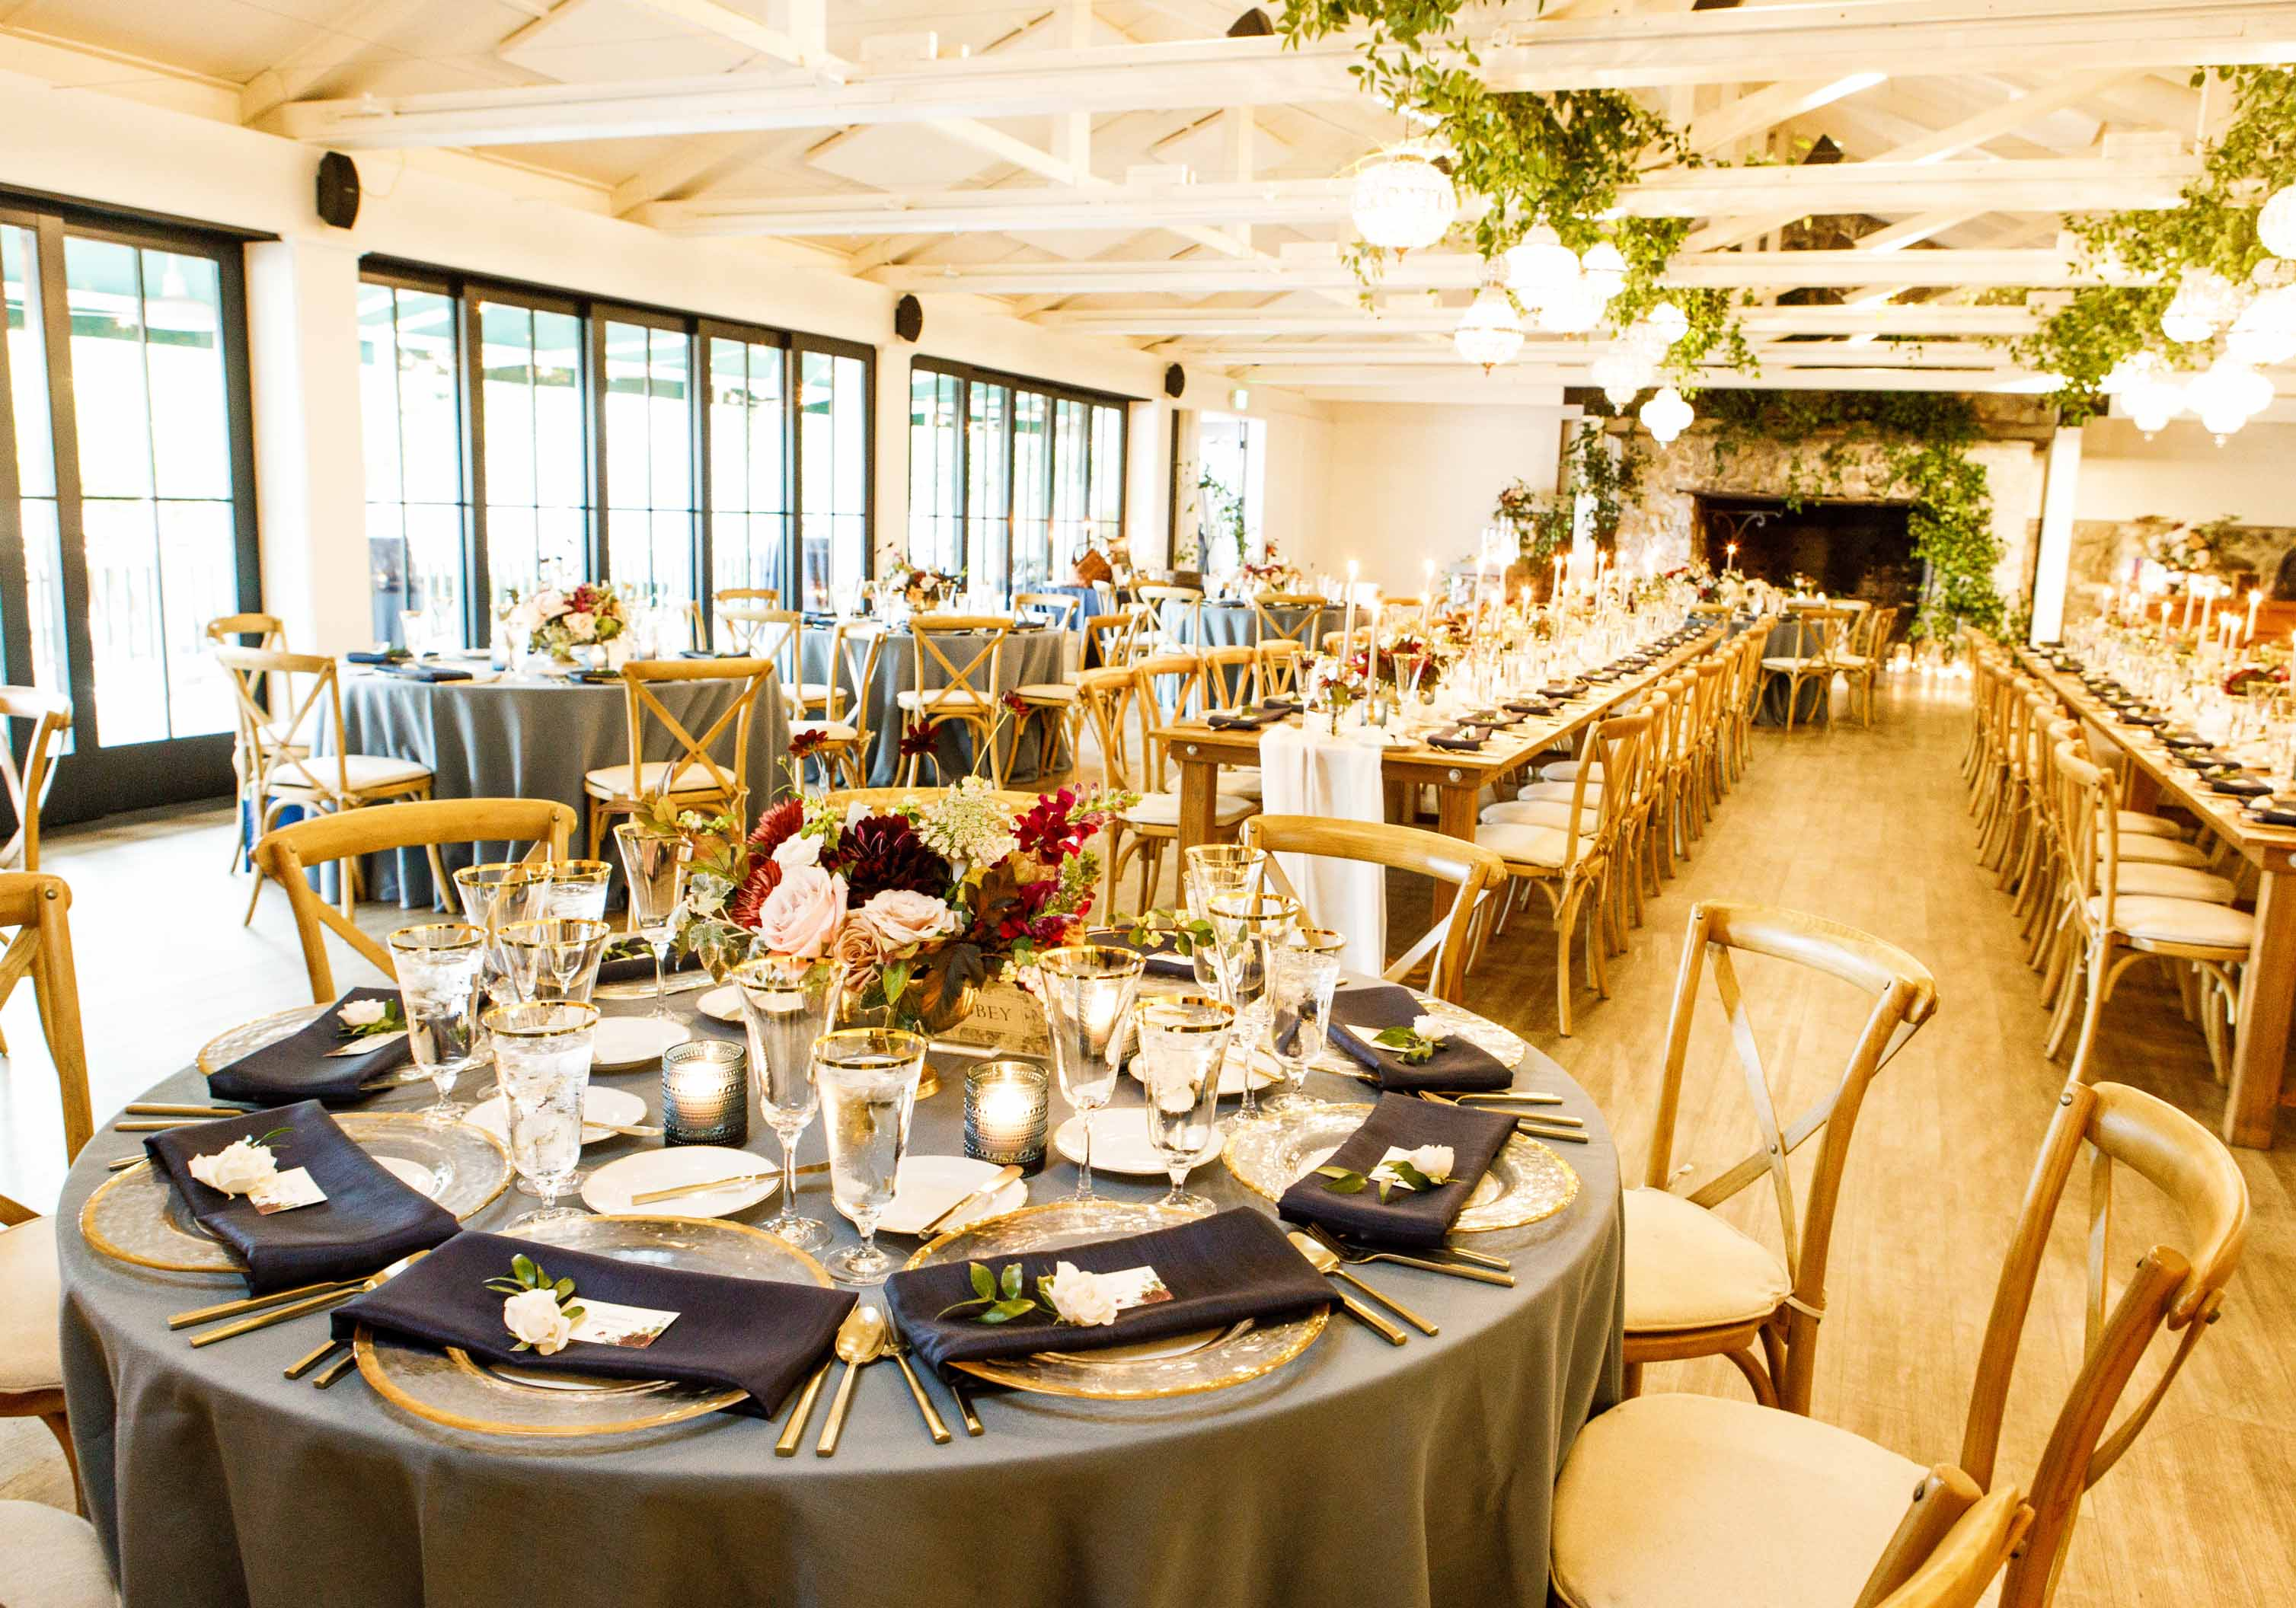 A mix of round and long tables for a dinner reception at Roche harbor wedding